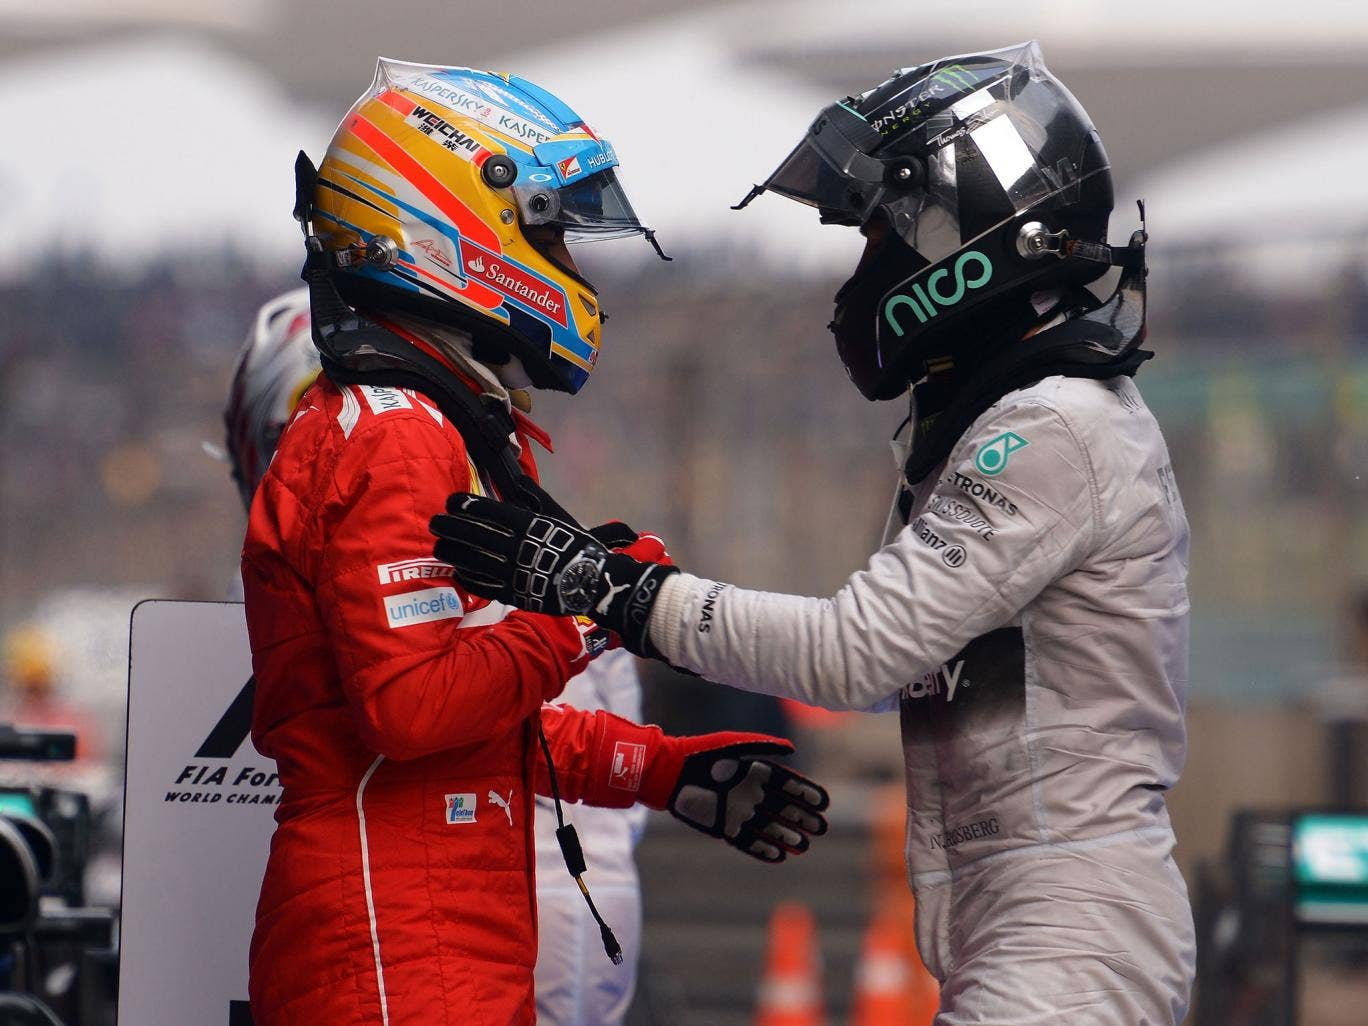 Fernando Alonso believes Mercedes have been the biggest surprise of the season